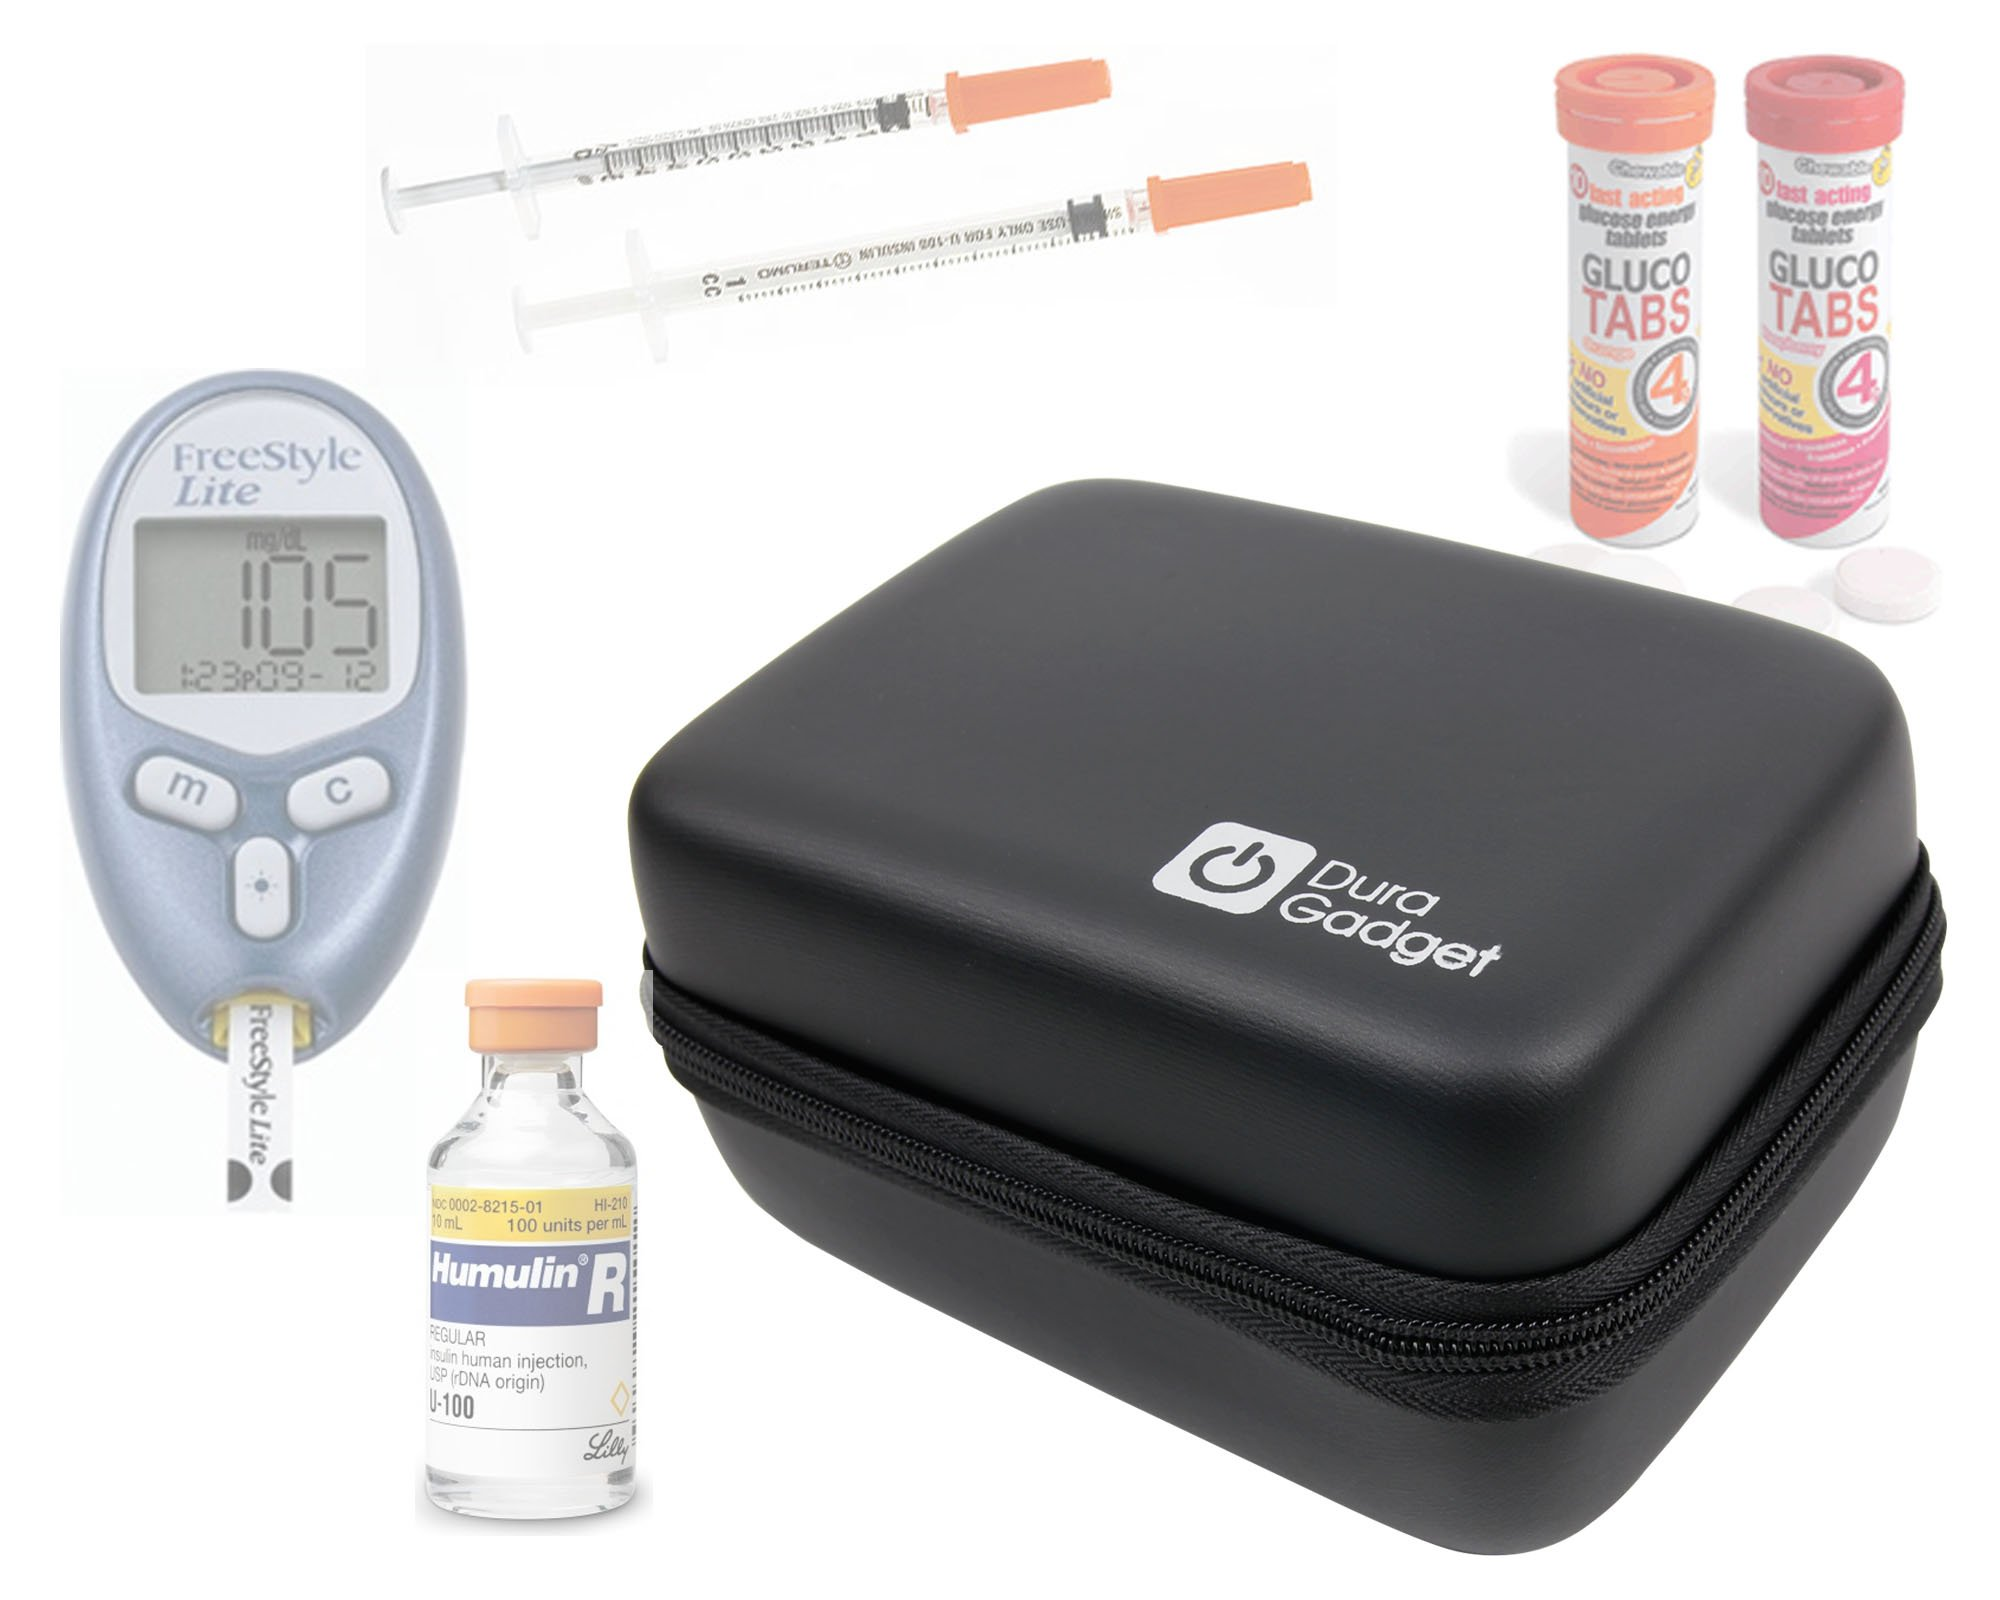 DURAGADGET Black EVA Rigid Insulin Diabetes Medical Supplies Shell Storage/Travel Case With Secure Dual Zips & Netted Internal Compartment